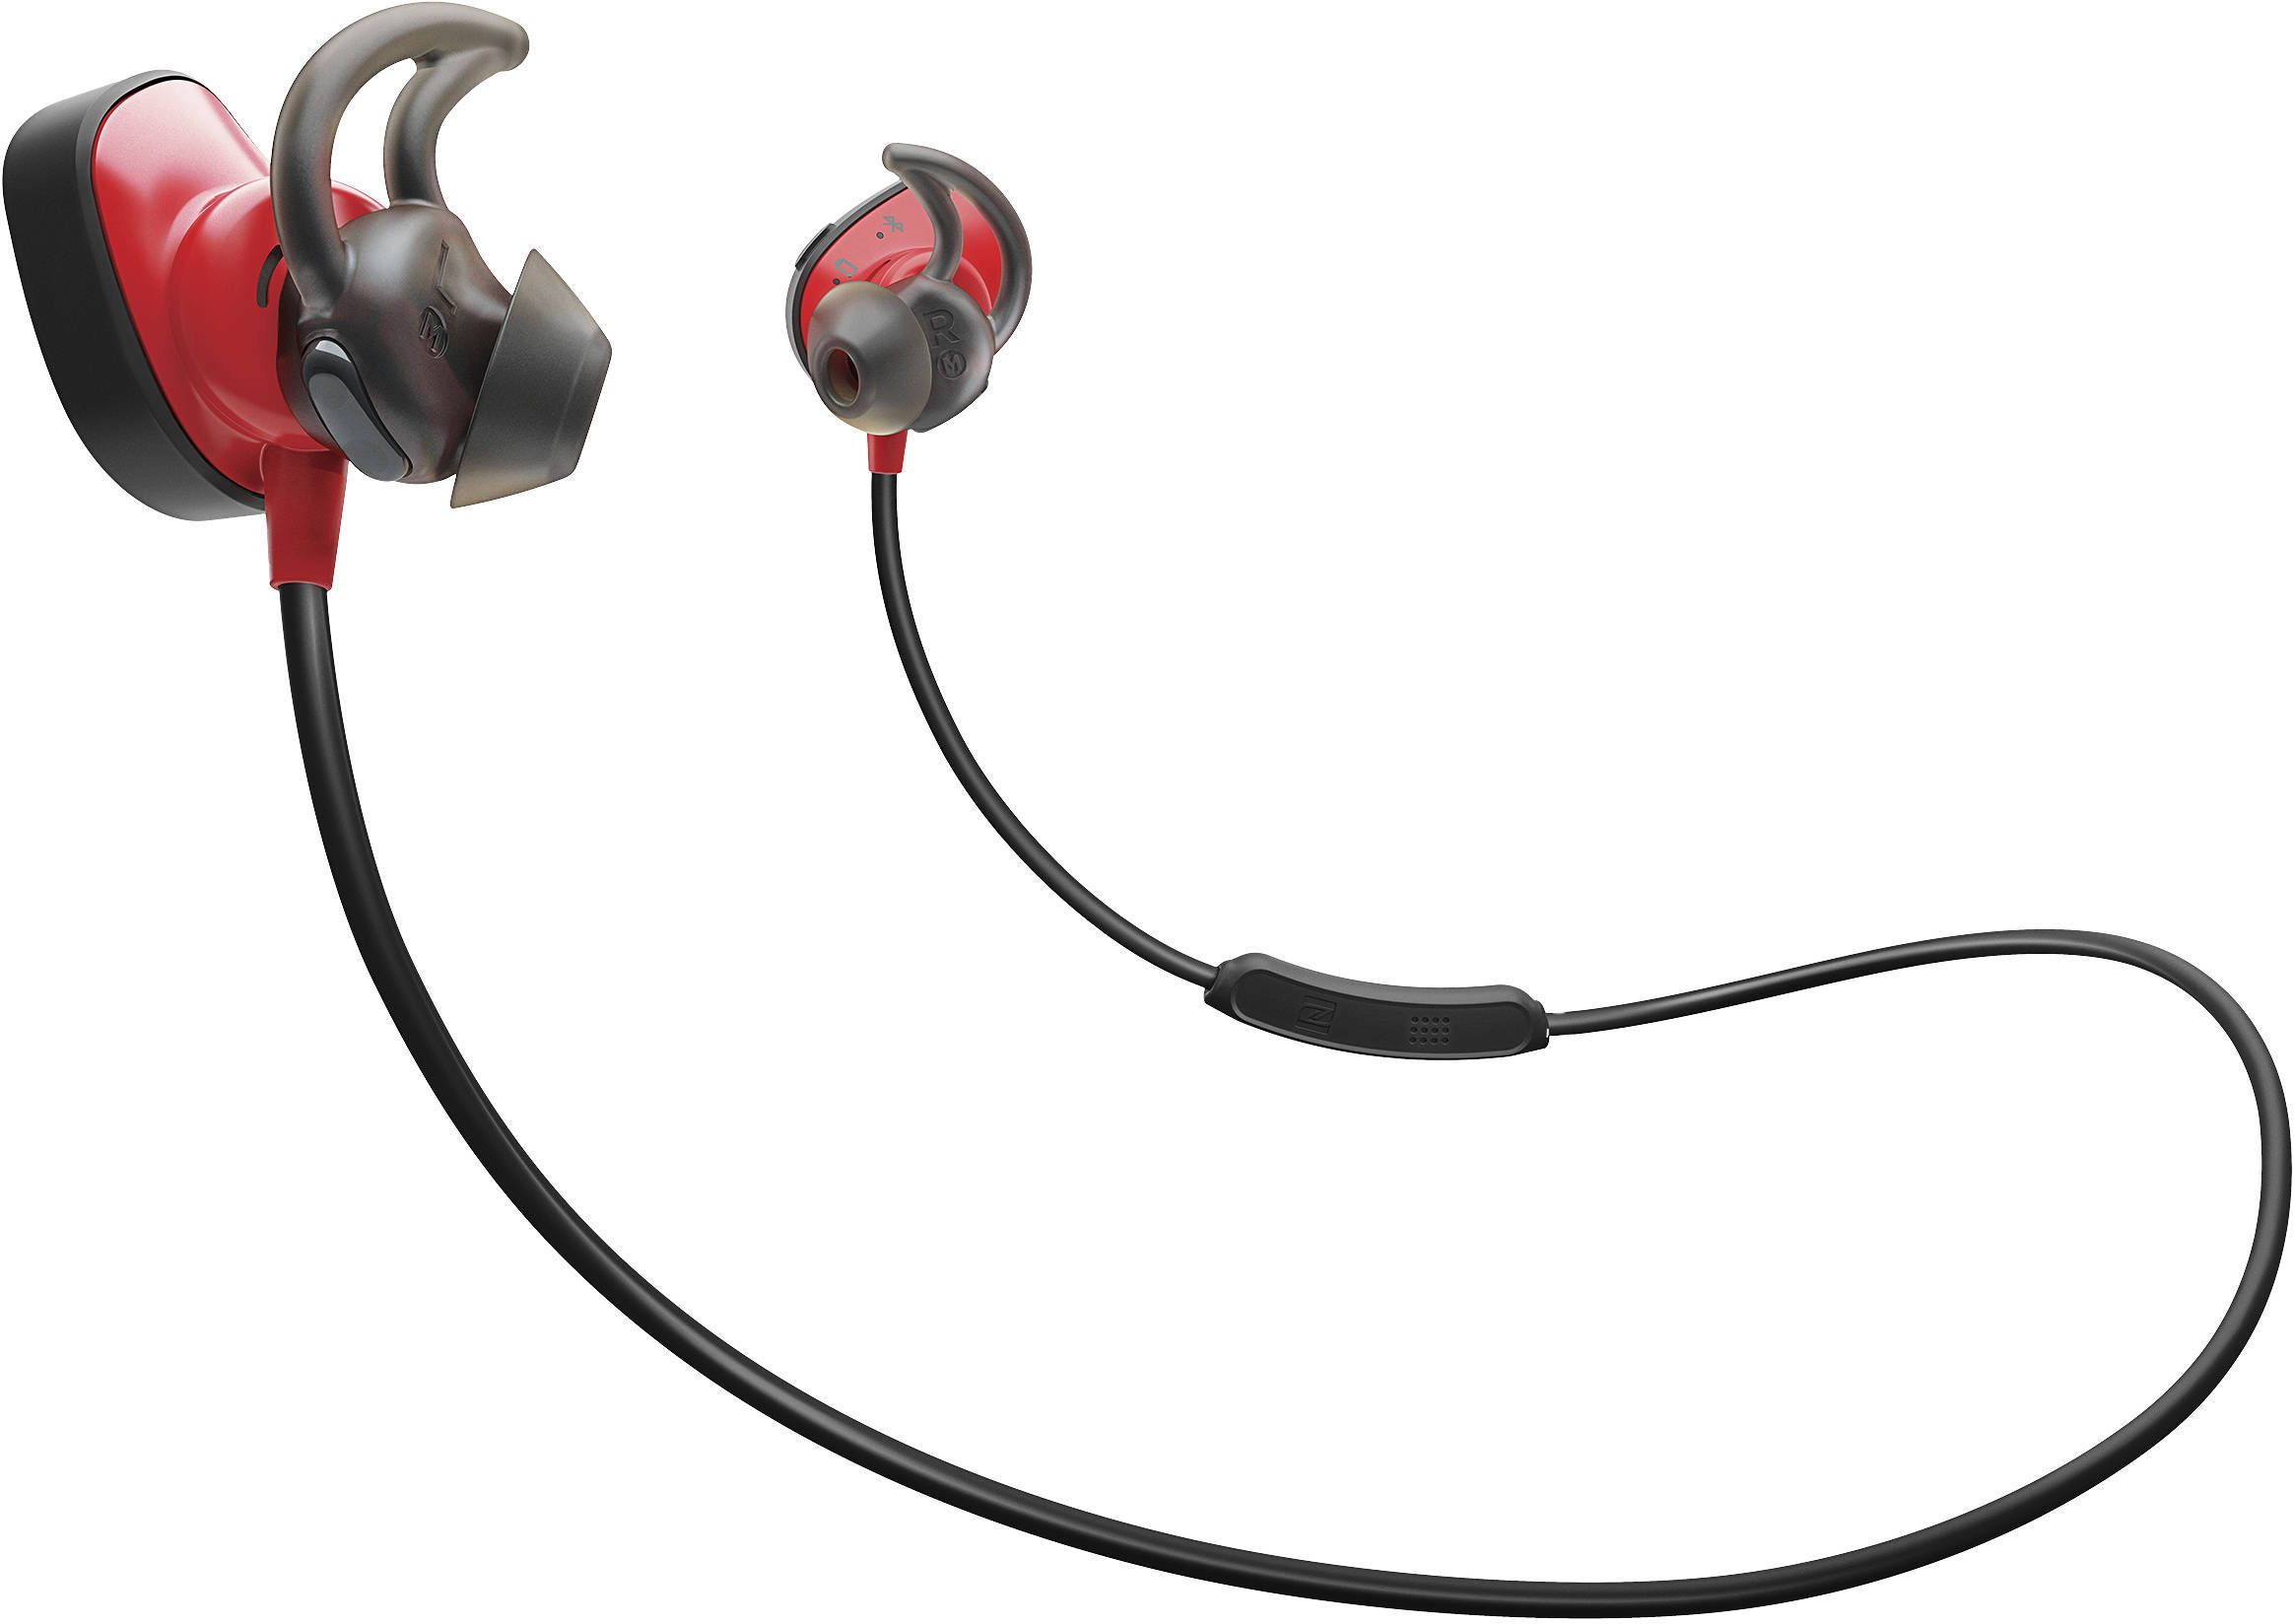 Search Results For Bose Soundsport Free Wireless Earphone Orange Pulse Headphones Power Red 762518 0010 Shipping